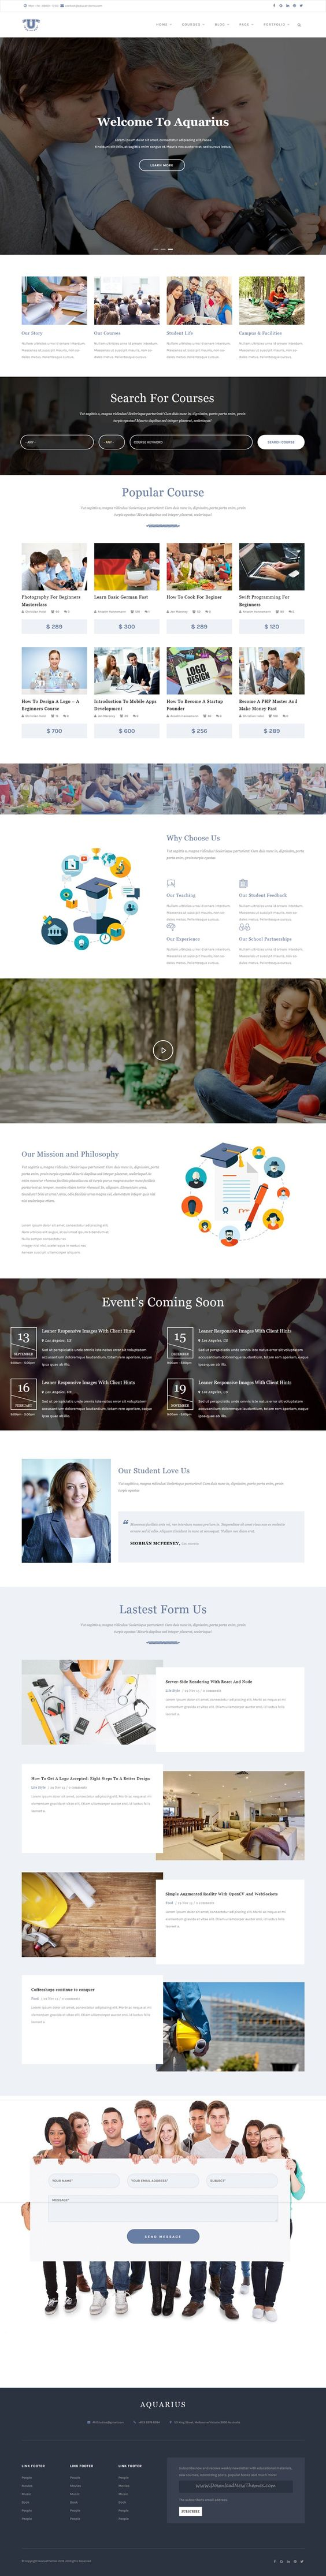 aquarius educational university drupal template drupal aquarius is a modern and crisp design premium drupal theme for educational institutions like colleges courses and events website now10159